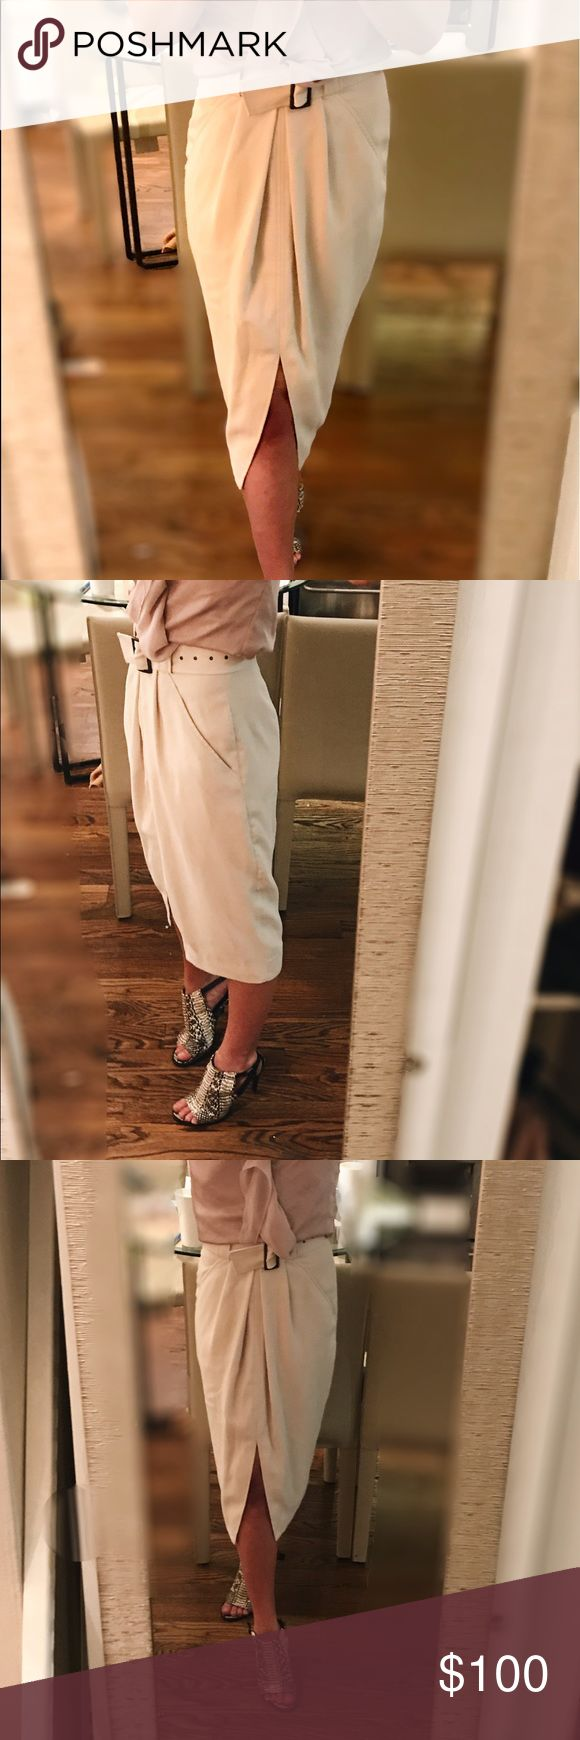 💫flash sale💫  Reiss | front slit fitted skirt Superior-quality materials, tailored to perfection: a must-have summer wardrobe staple.!  This Off-white midi skirt is adorned with a front slit and matching, removable belt: fun, sexy, versatile piece will never lose its shape.  fully lined yet lightweight, the fabric/dress can be worn across all seasons.  Excellent condition -- bought at end of last season,  but is a bit to big for me this year.  Hate to part with it!! Reiss Skirts Midi